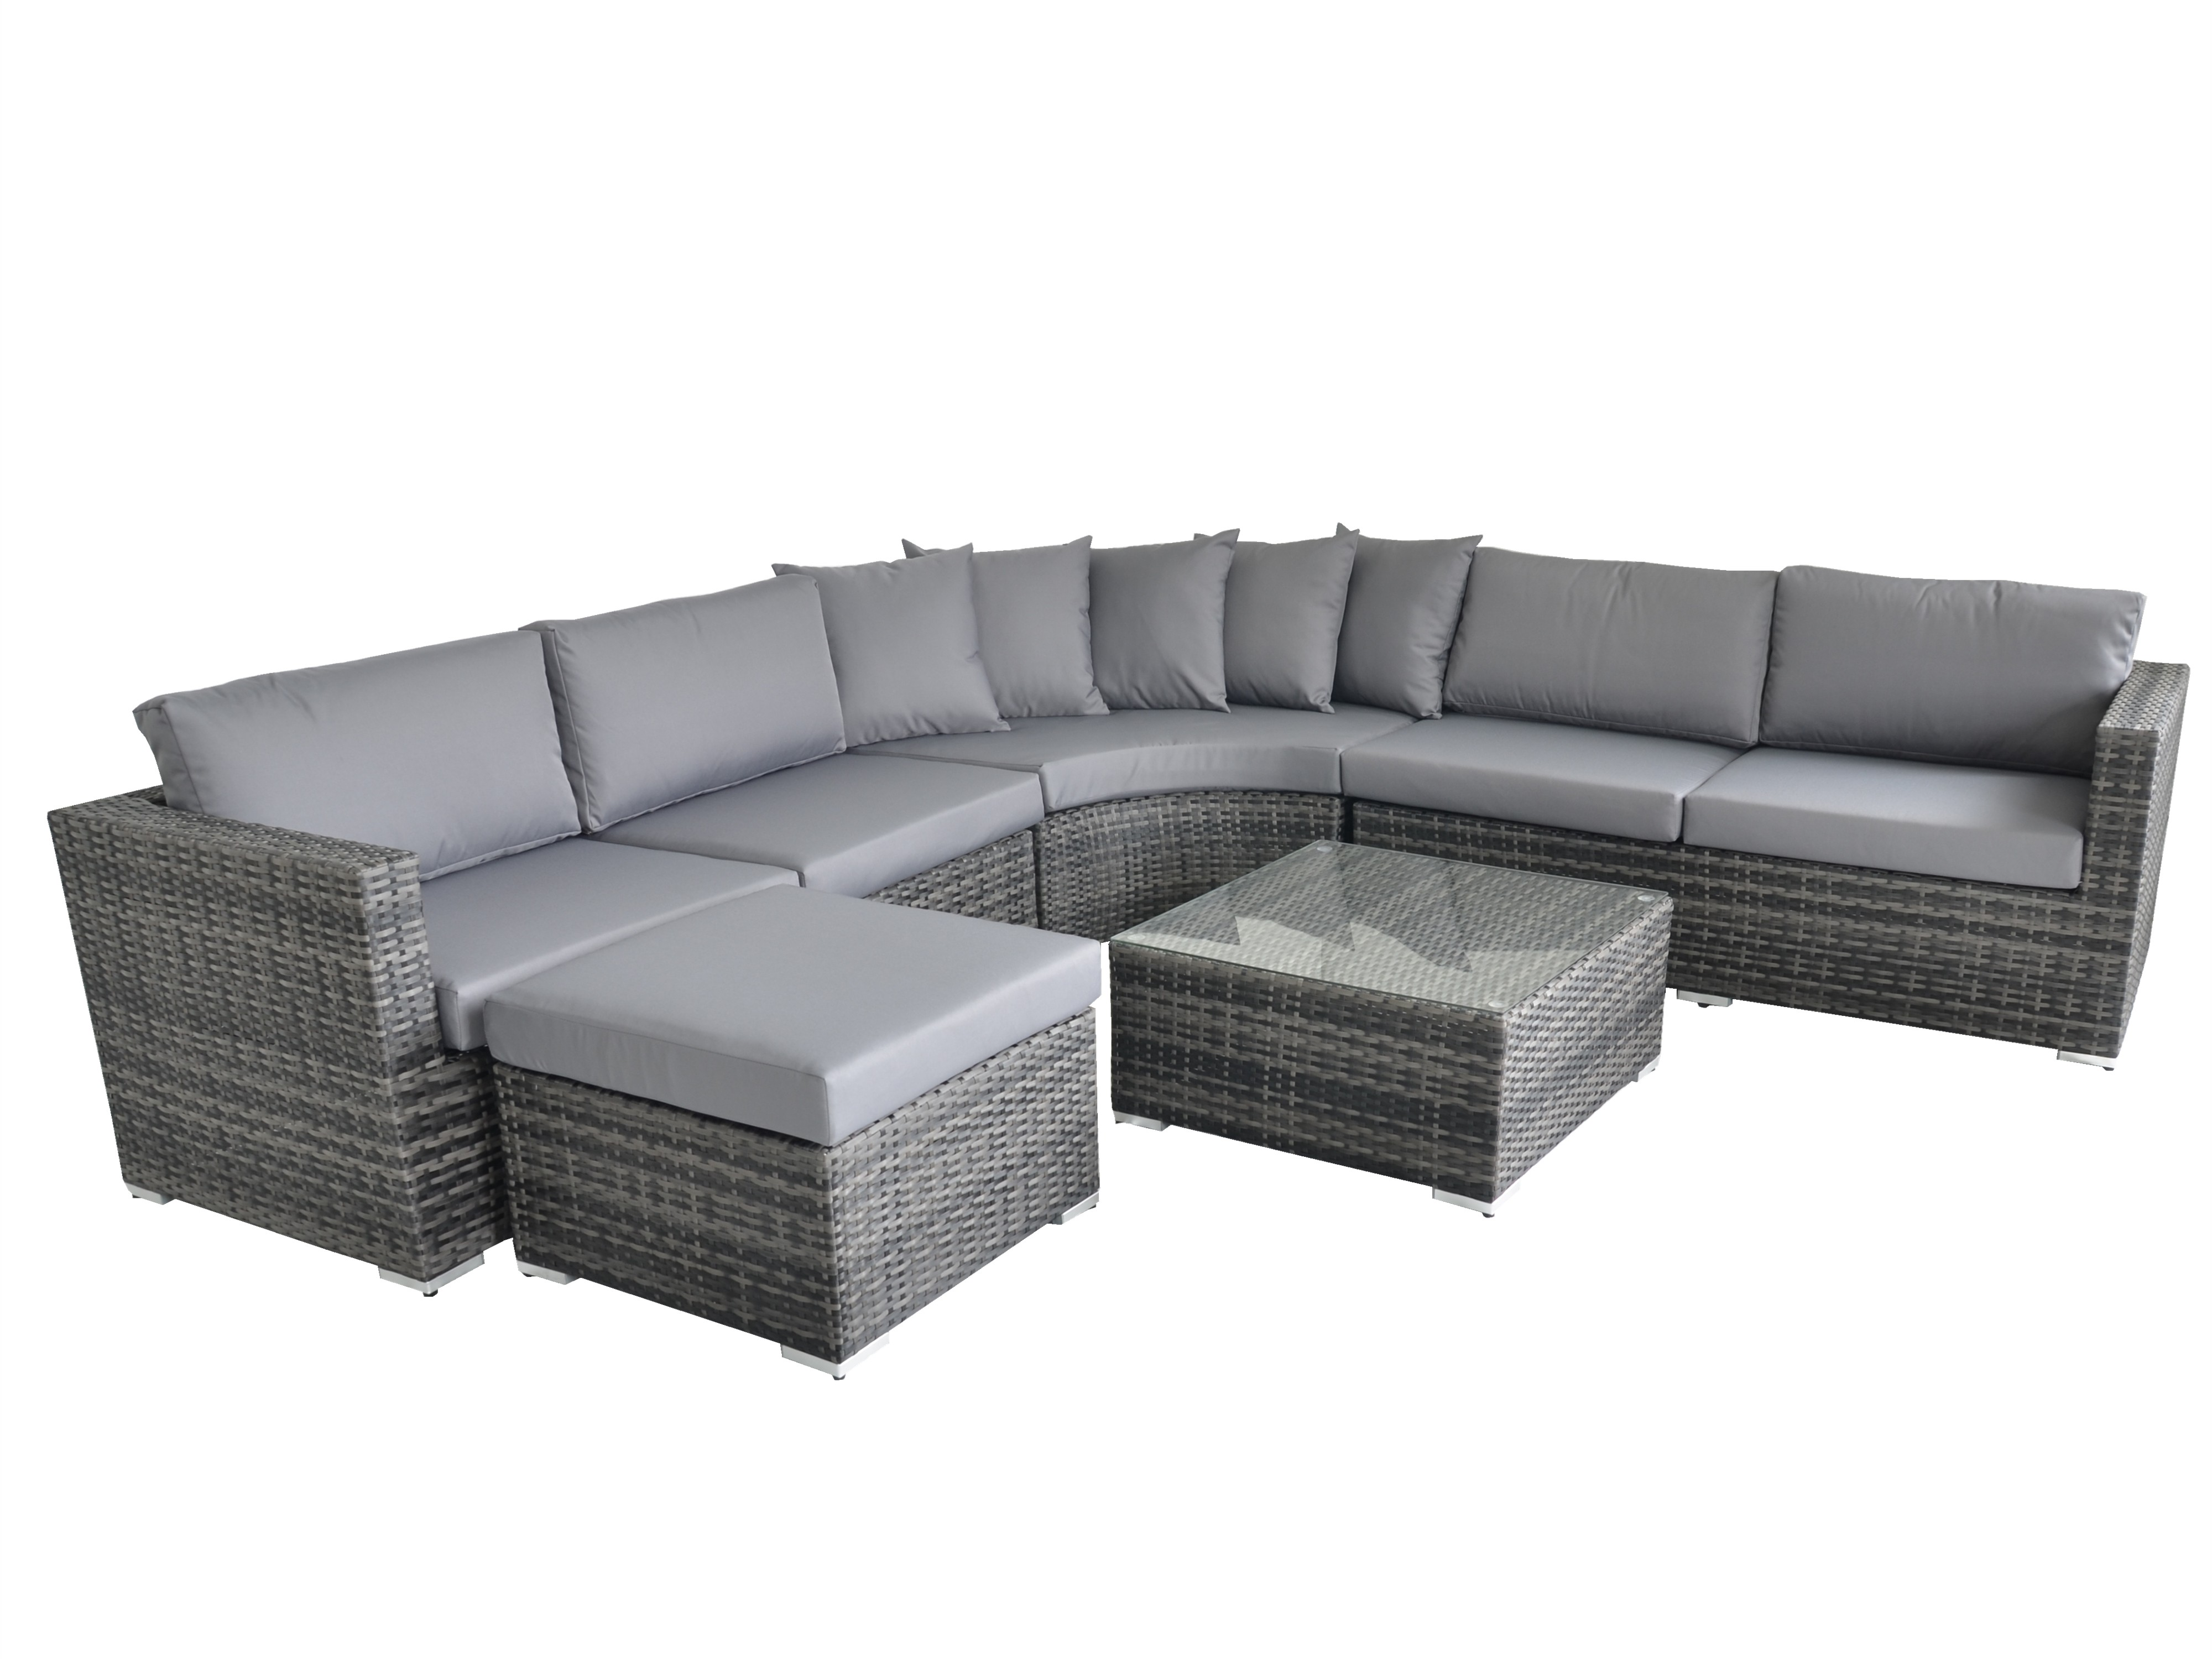 Lounge Sofa Depth Blog Experience A New Depth Of Relaxation With A Rattan